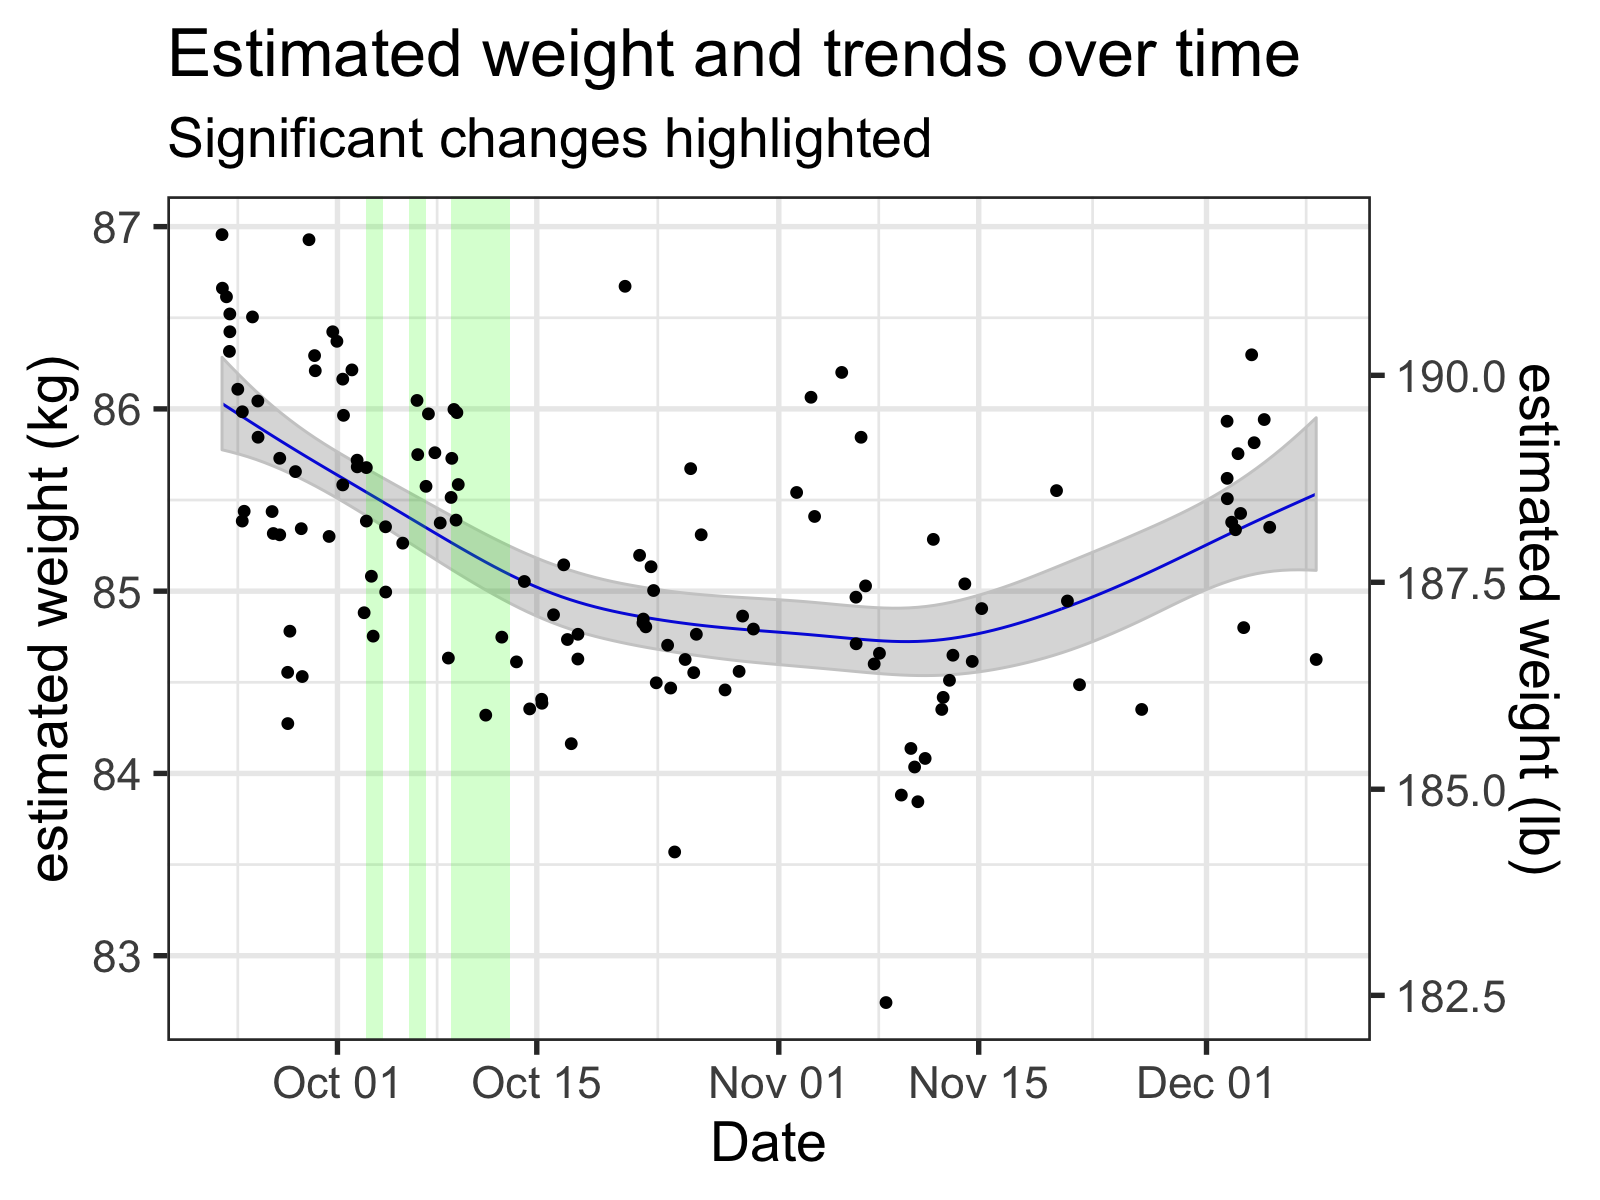 My inferred 'naked' weights, along with the time smooth from the GAM. Regions where this smooth was changing significantly (i.e., where the simultaneous 95% confidence interval of the derivative did not include zero) are highlighted, with green meaning a significant downward trend and red indicating upward.